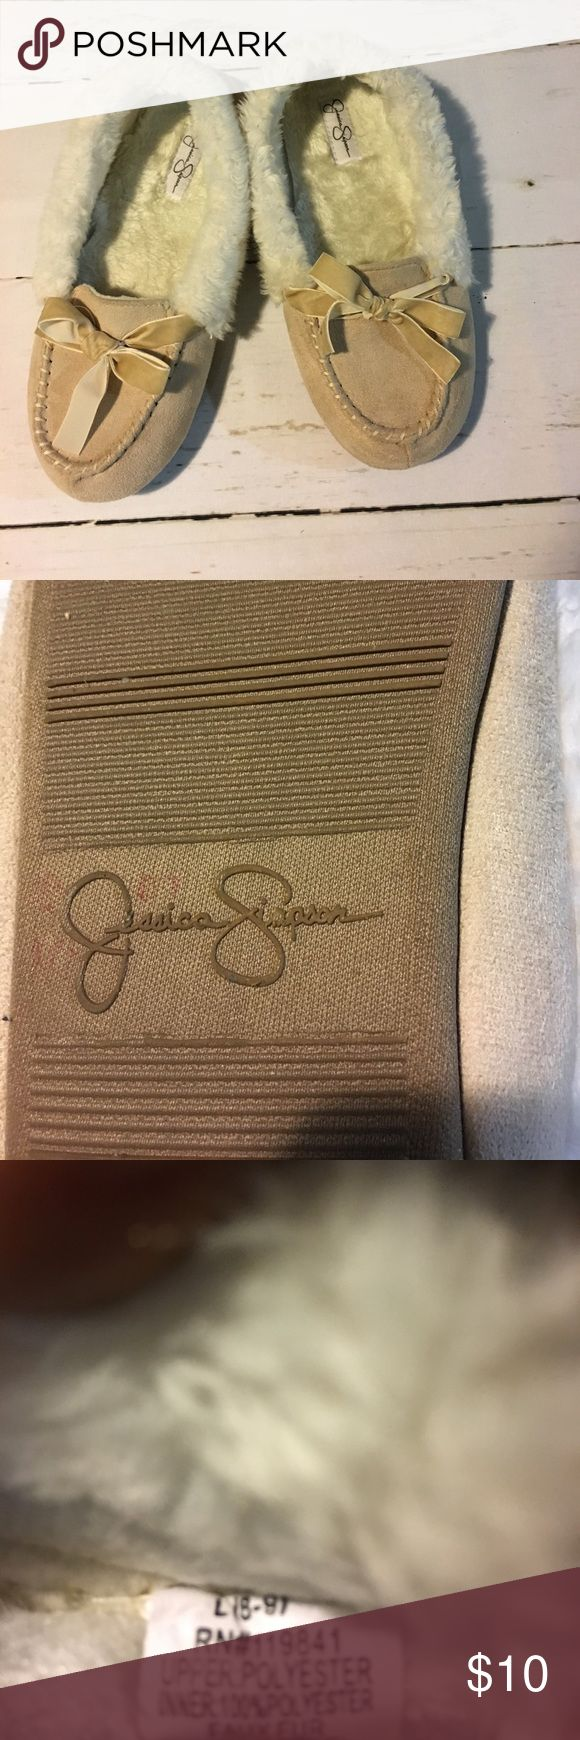 Jessica Simpson Slippers Tan and cream slippers by Jessica Simpson. Gently used Size 8/9 Jessica Simpson Shoes Slippers